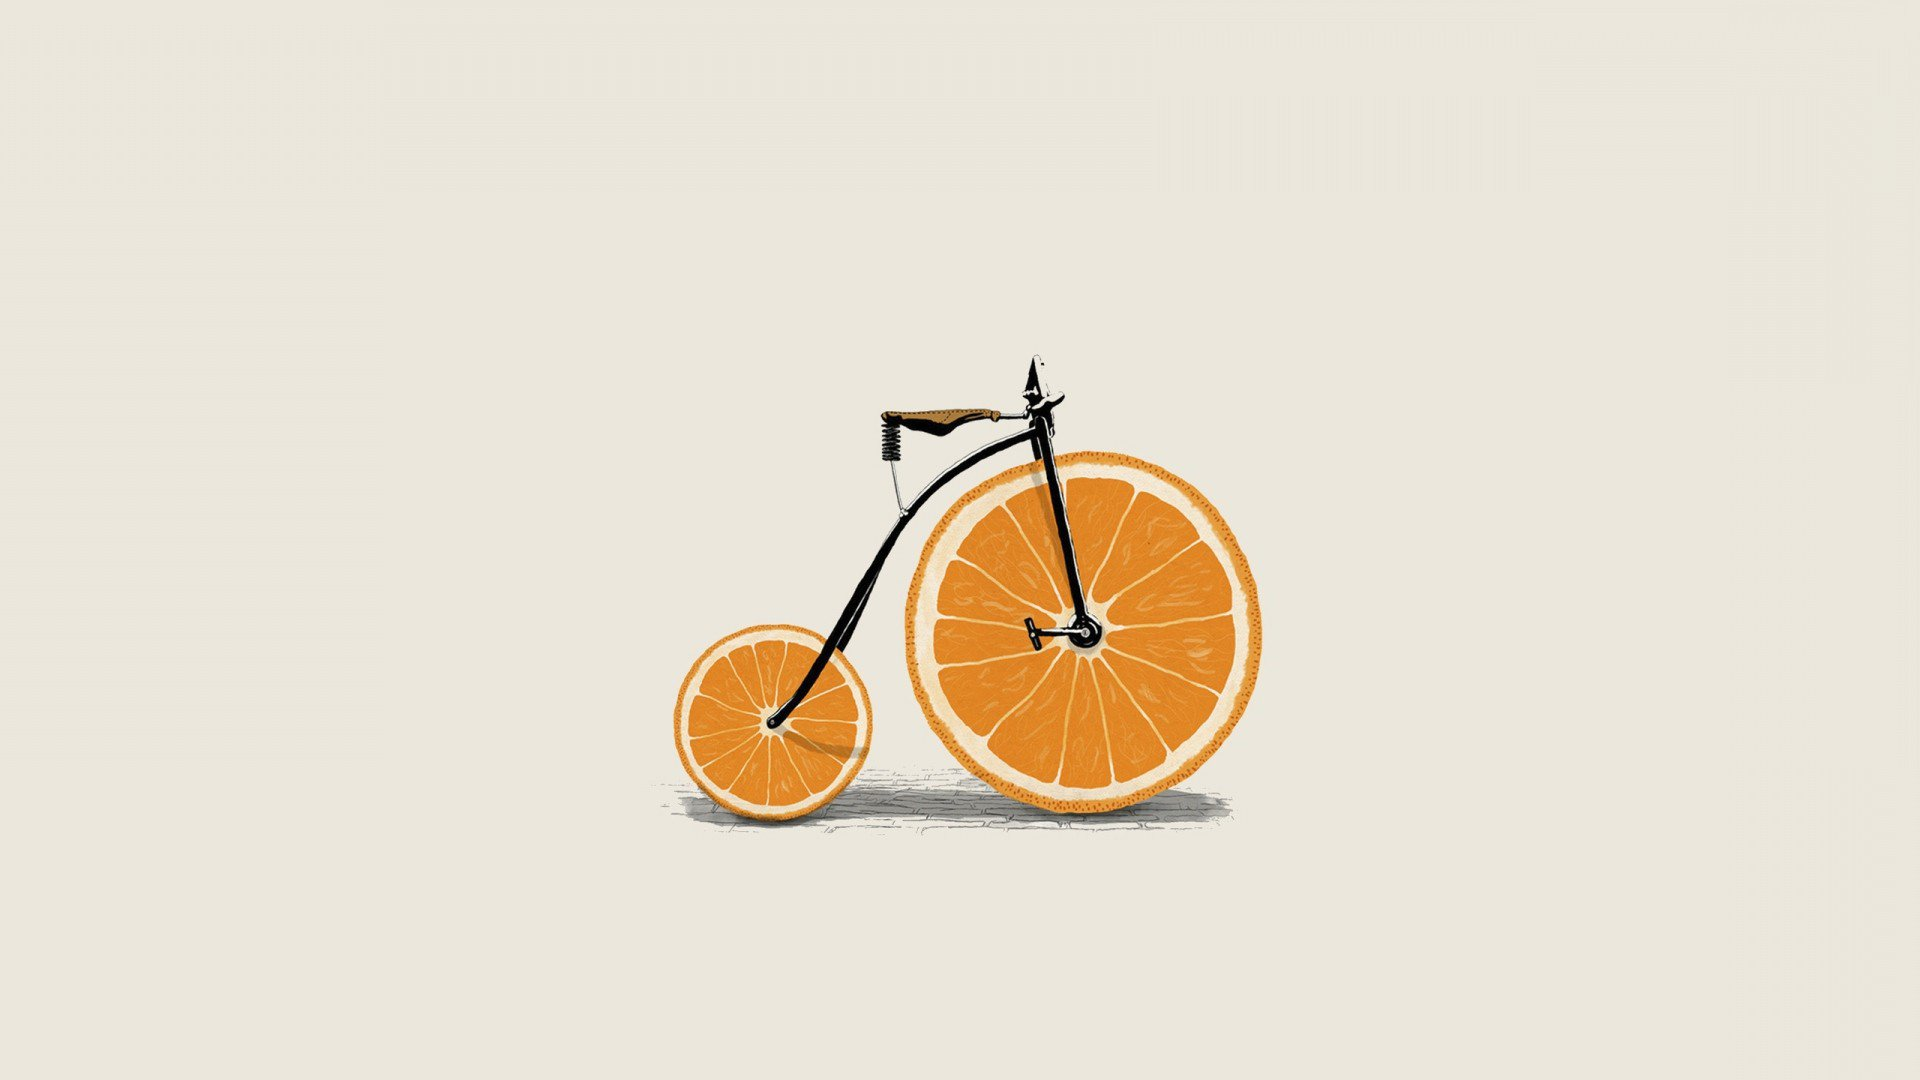 Bicycle Minimalism HD Artist 4k Wallpapers Images Backgrounds